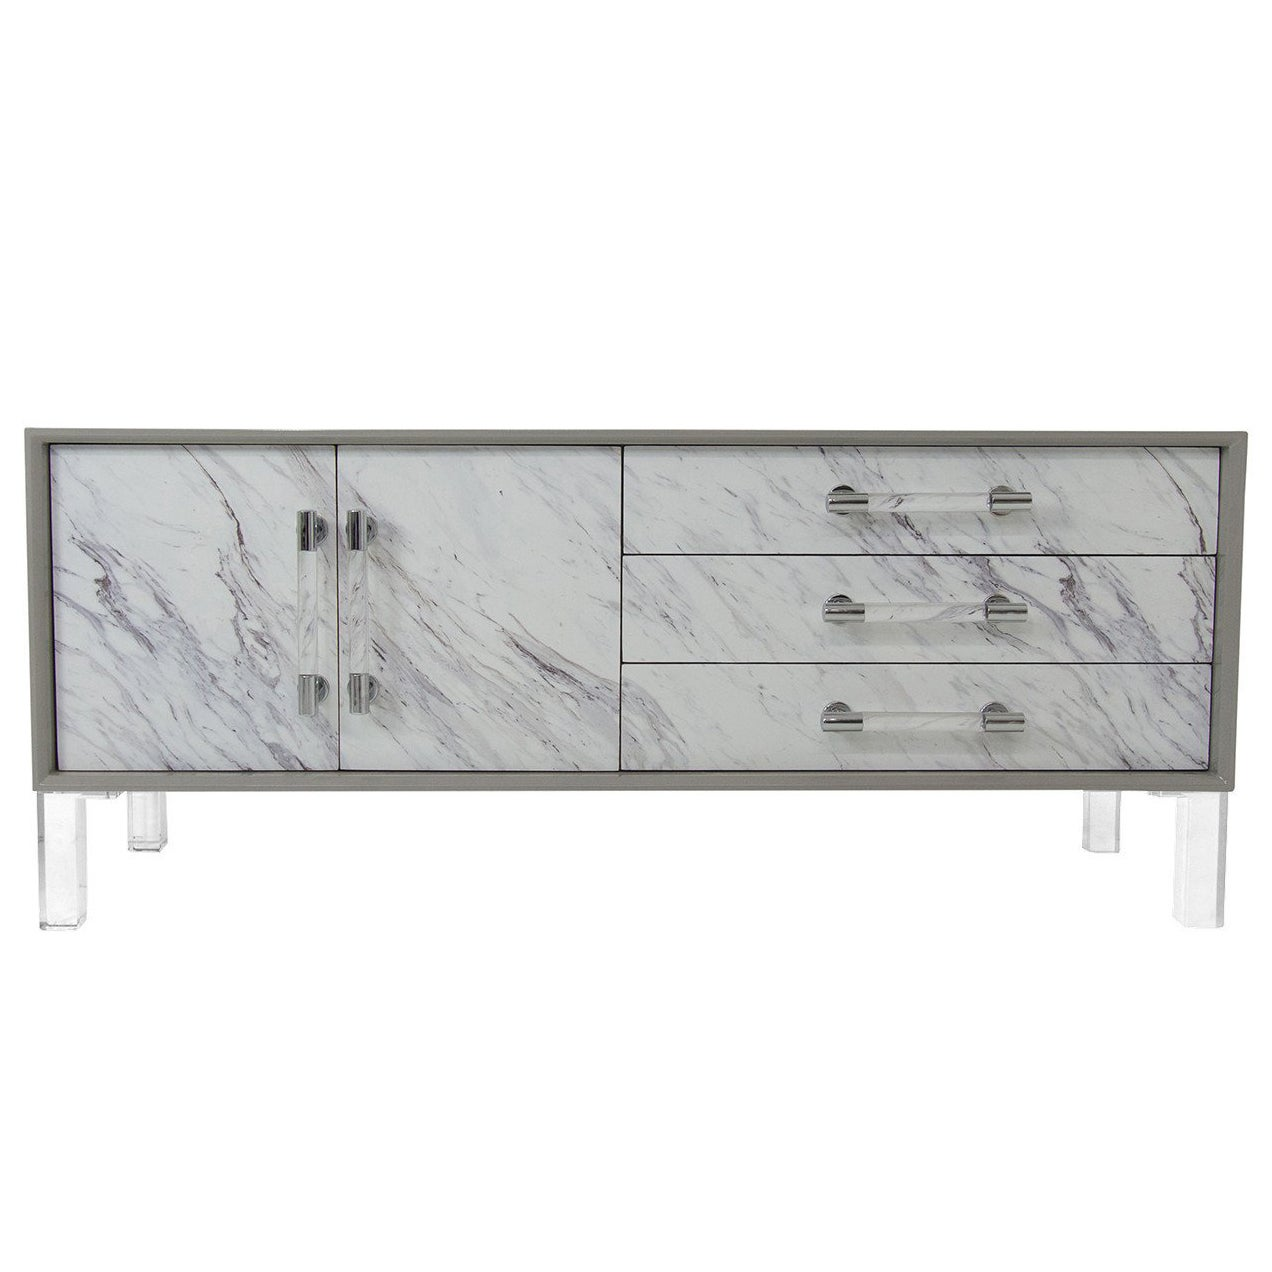 Greystone Lacquered Credenza with Carrara Marble Detail and Lucite Pulls & Legs